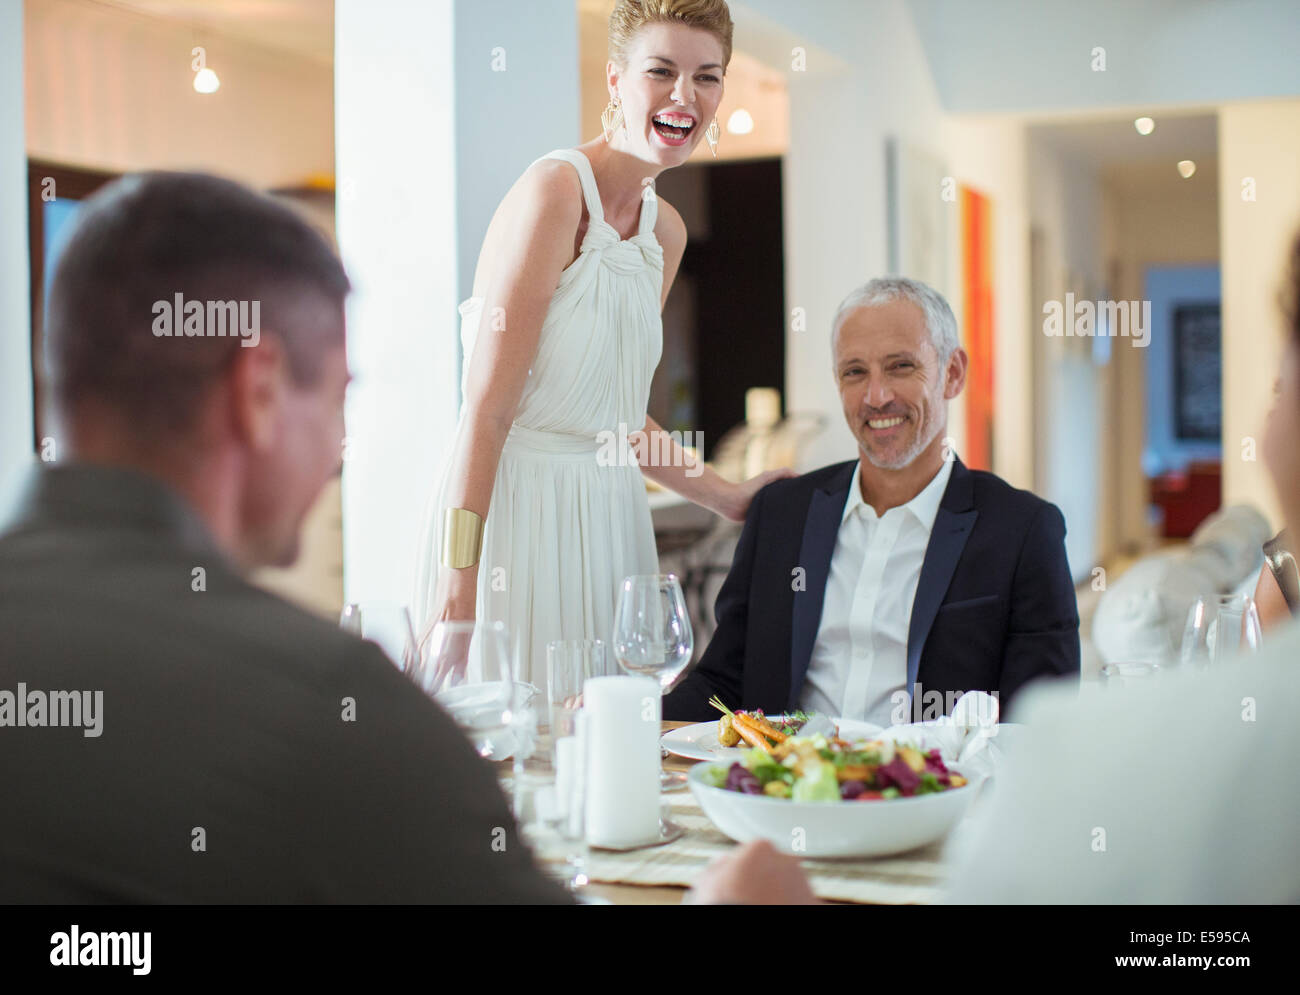 Couple laughing at dinner party Photo Stock